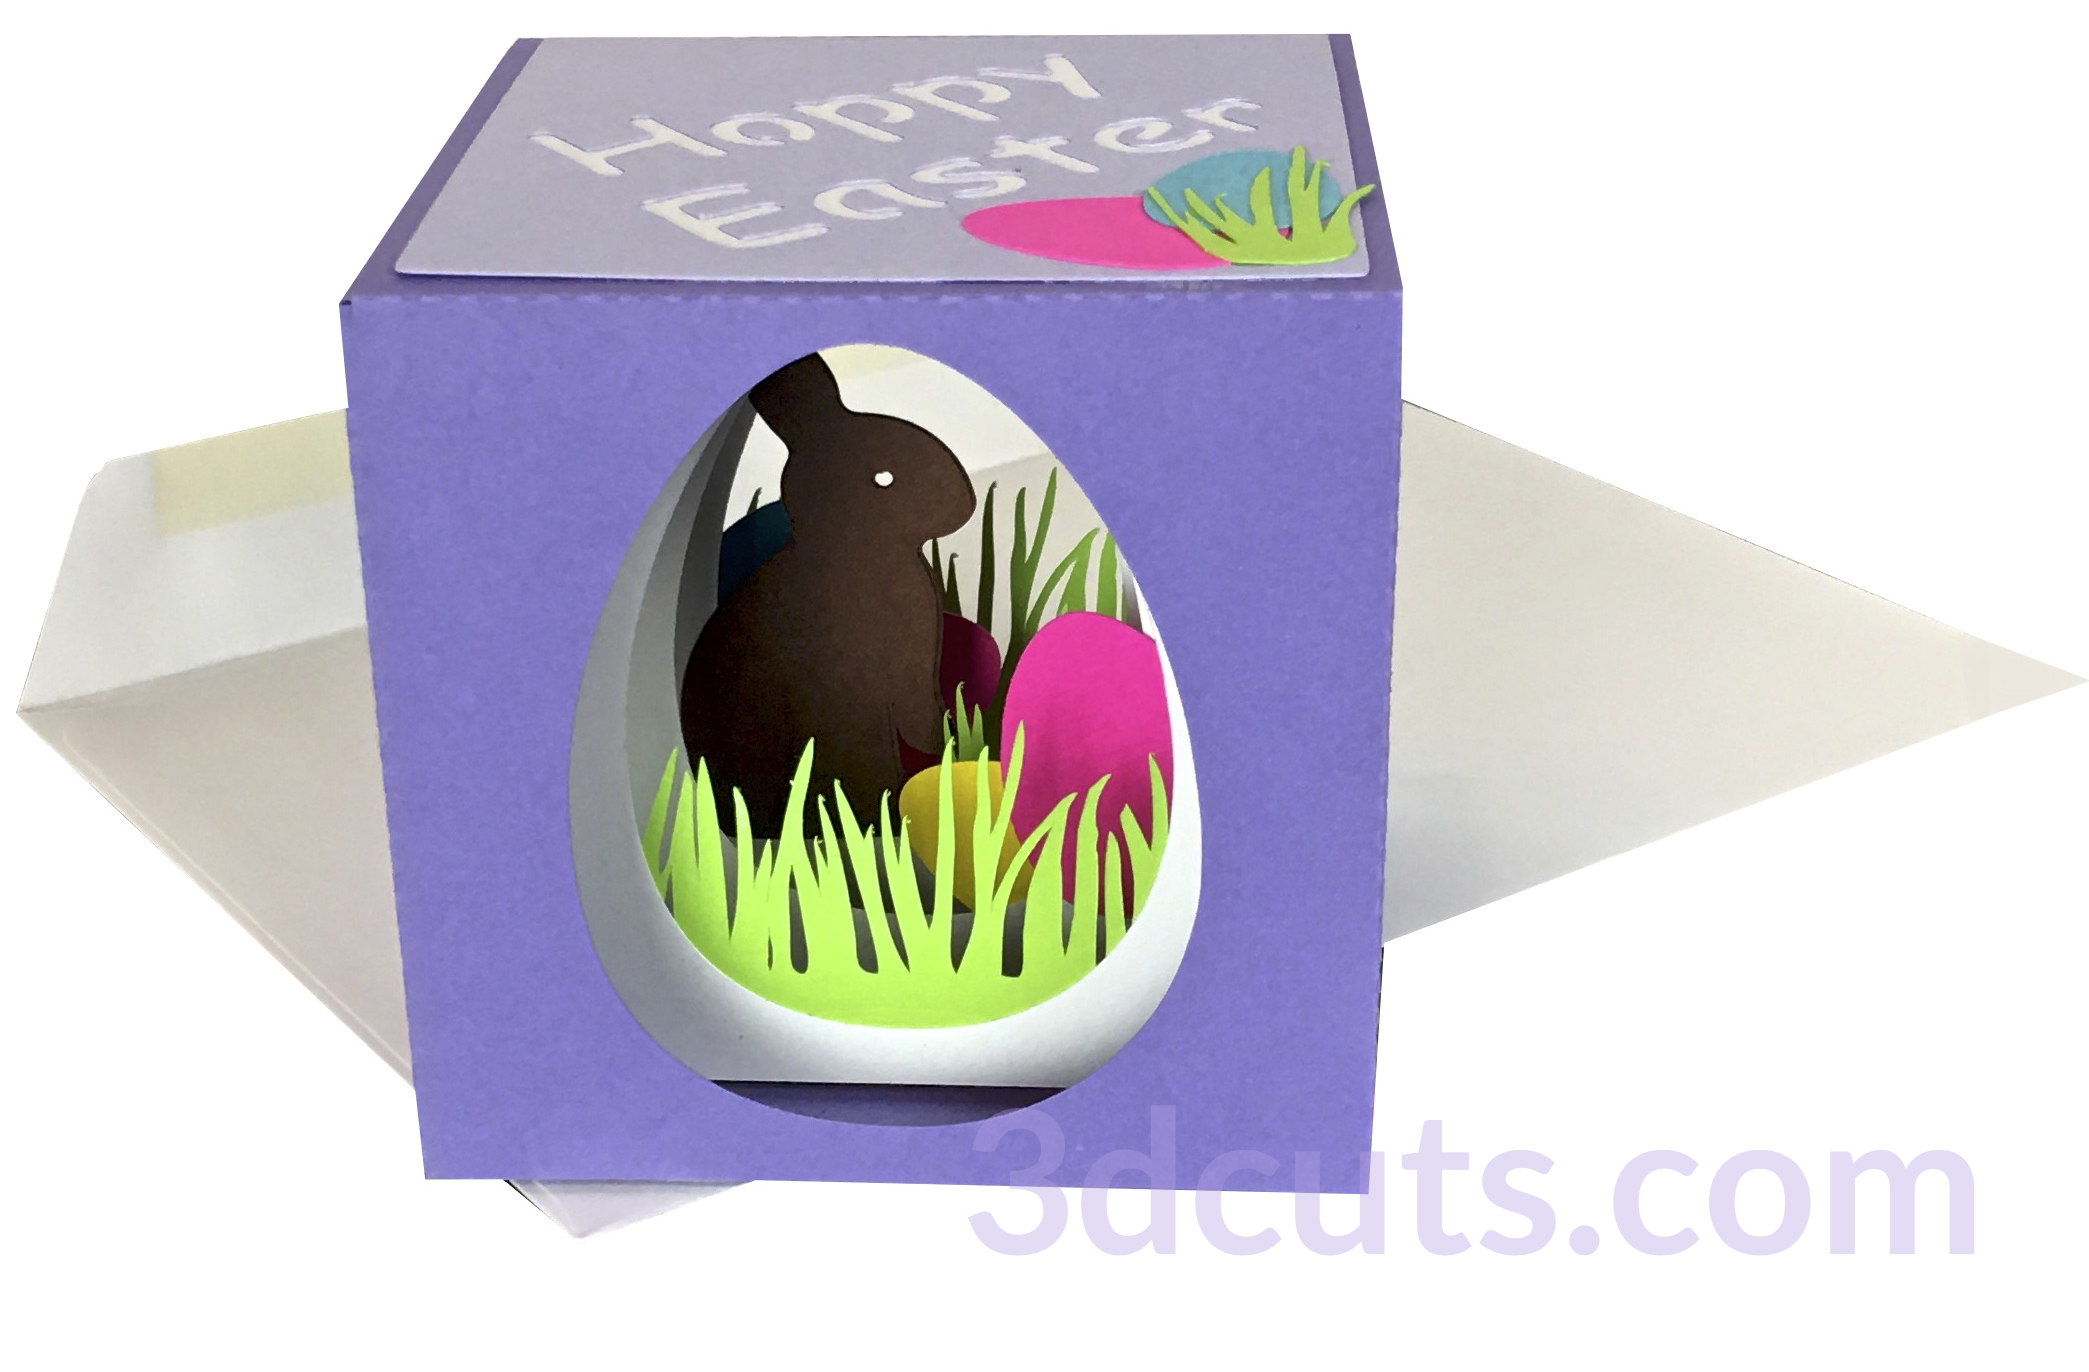 Easter Bunny Cube Card by 3dCuts.com, by Marji Roy, Cutting files in .svg, .dxf, png and .pdf formats for use with Silhouette, Cricut and Brother cutting machines, paper crafting files, SVG Files